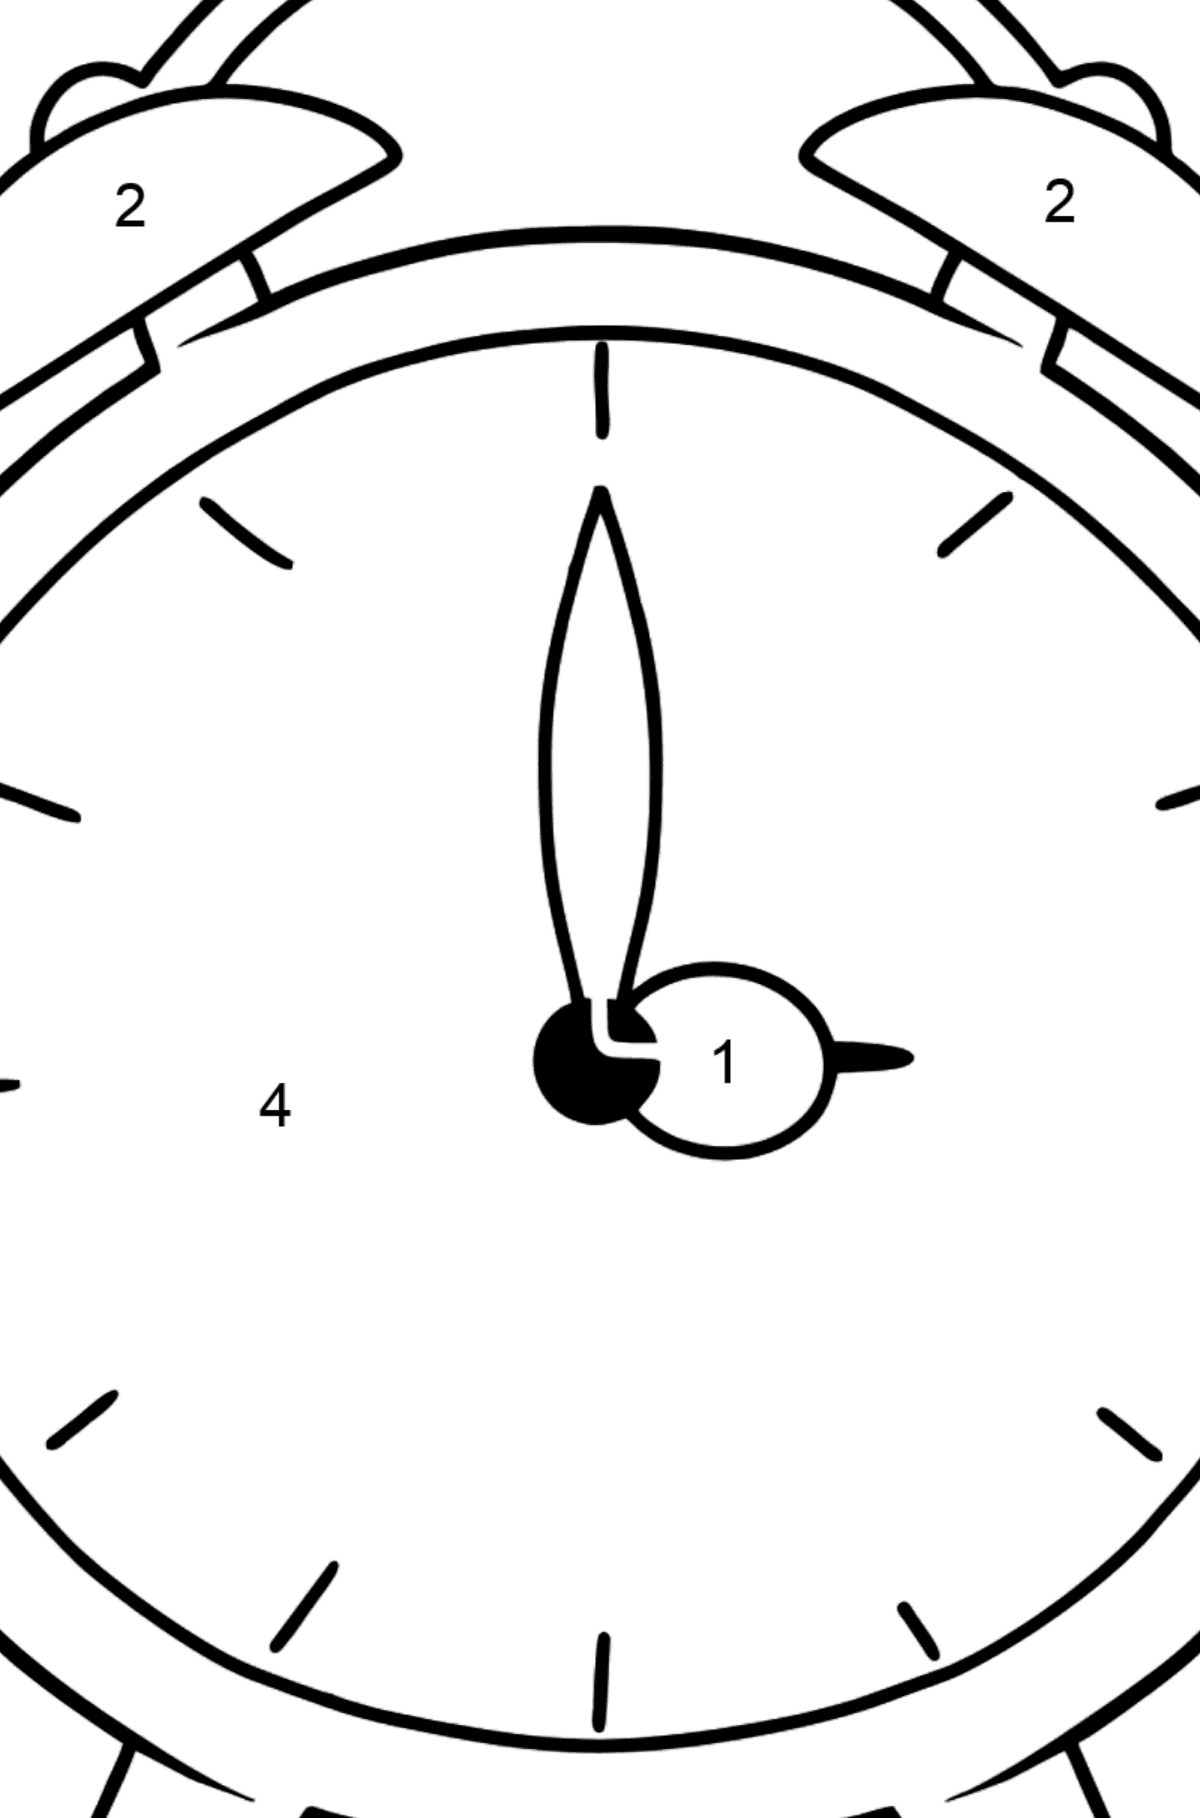 Alarm Clock coloring page - Coloring by Numbers for Kids